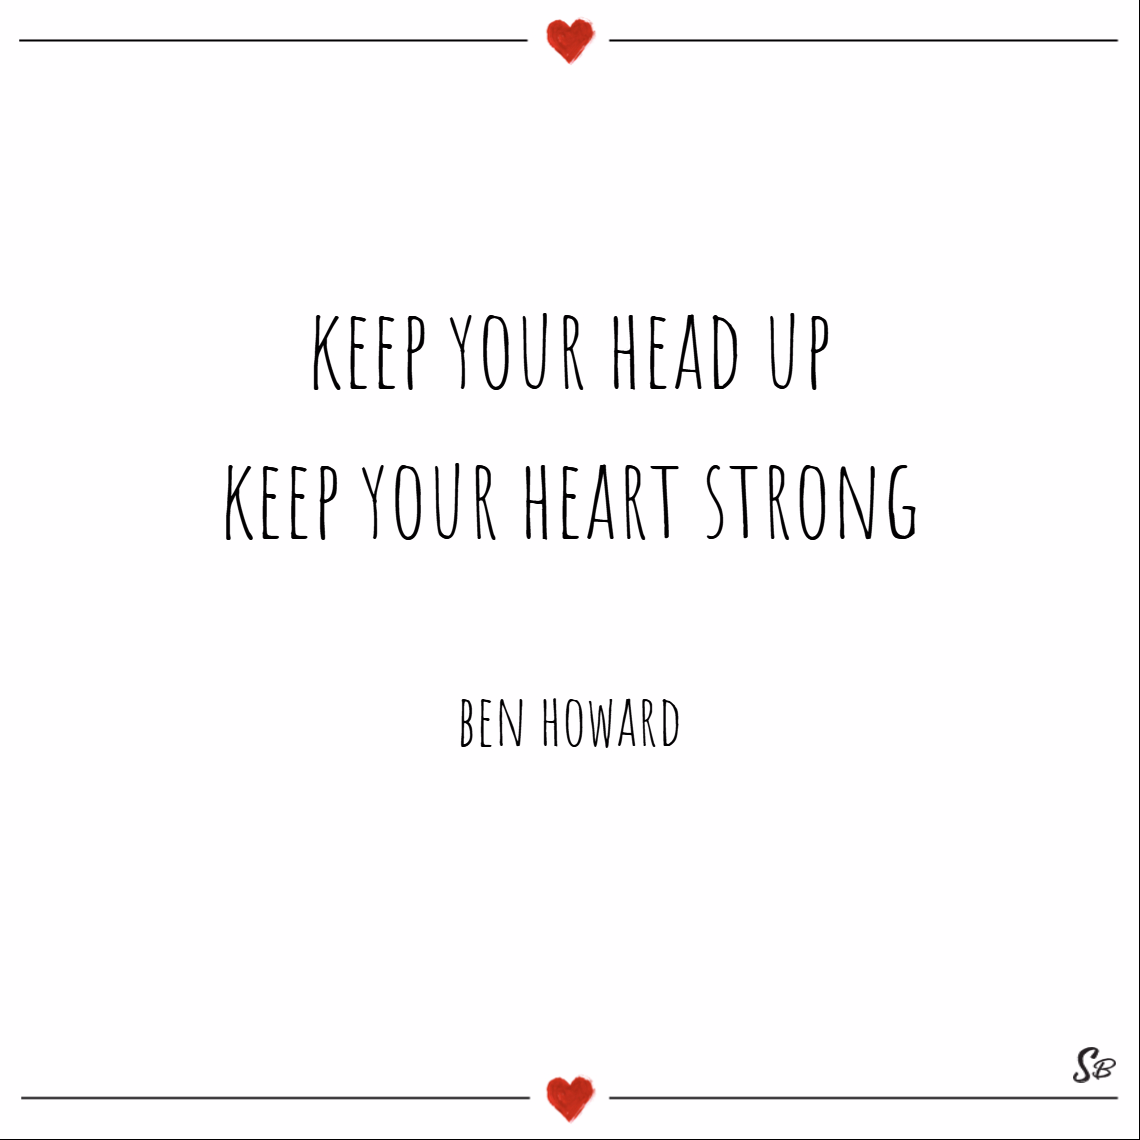 Keep your head up. keep your heart strong. – ben howard